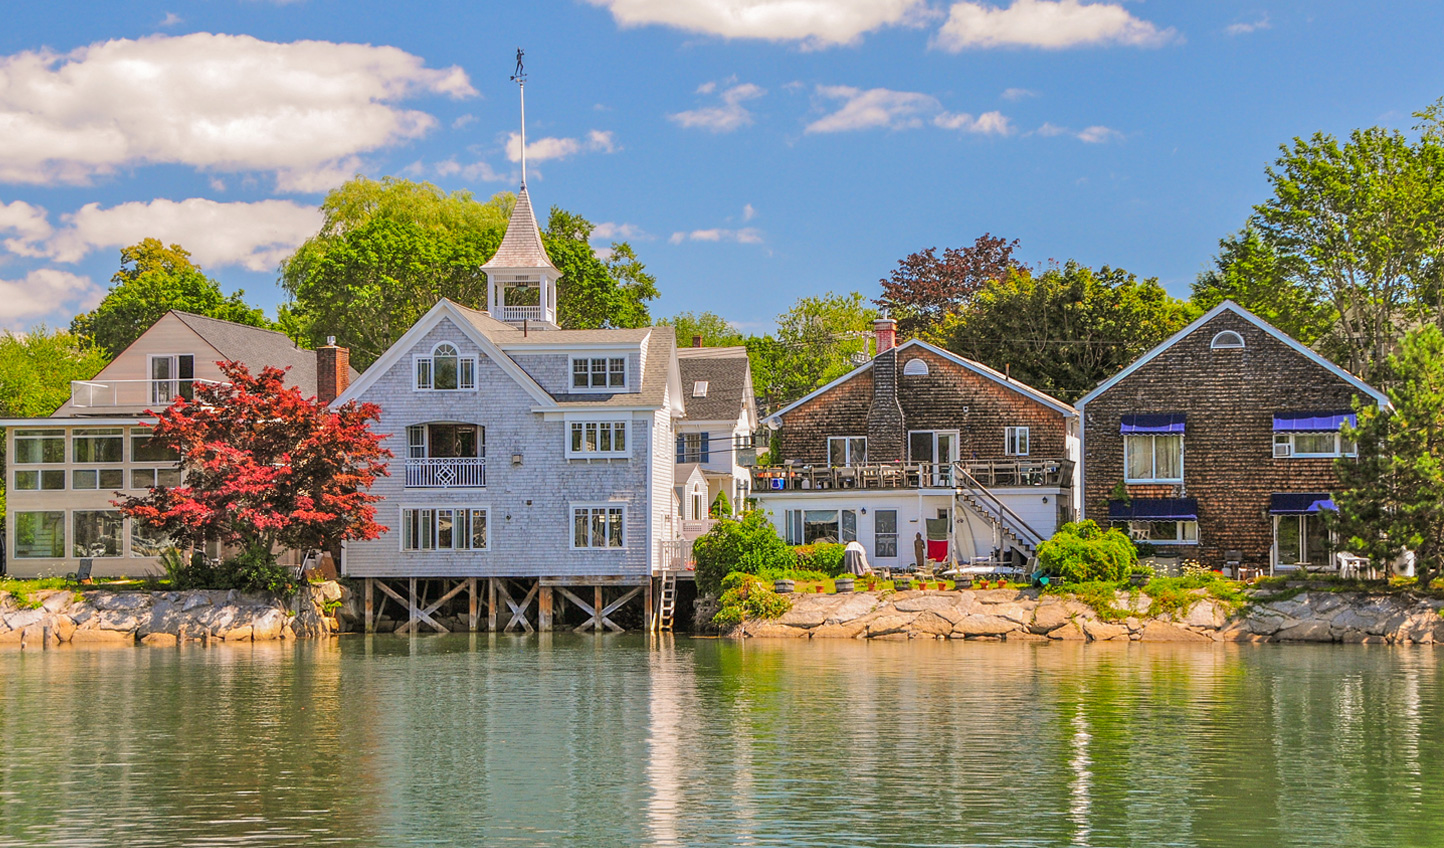 The traditional fishing village of Kennebunkport